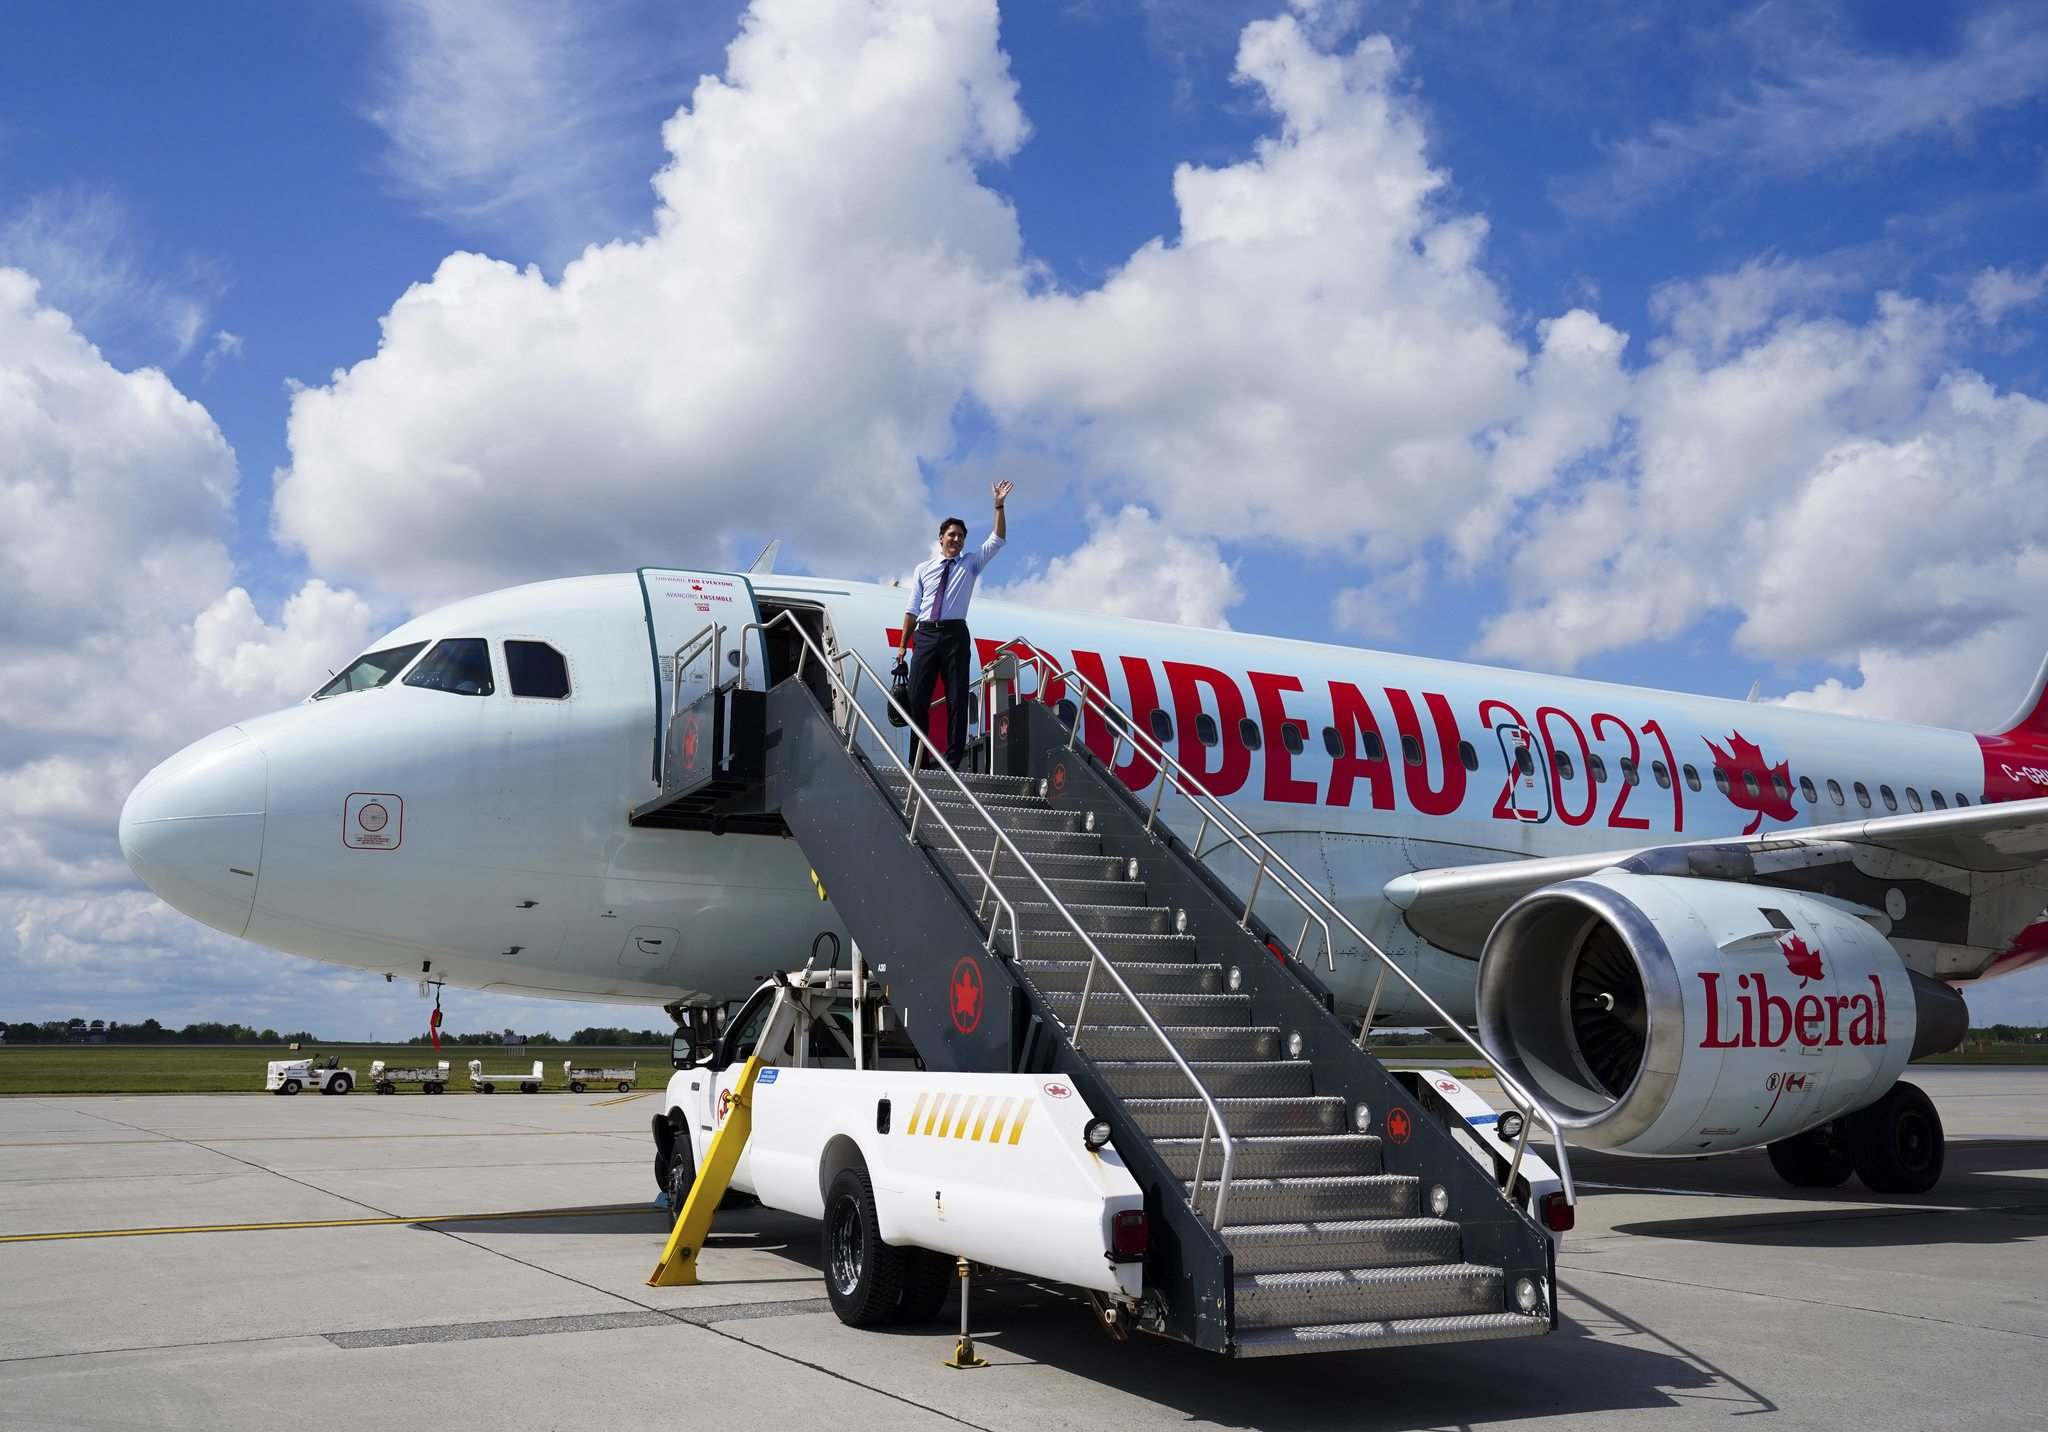 Sean Kilpatrick / The Canadian Press</p><p>Liberal Leader Justin Trudeau departs Ottawa on Aug. 22, en route to Atlantic Canada for campaign events.</p>